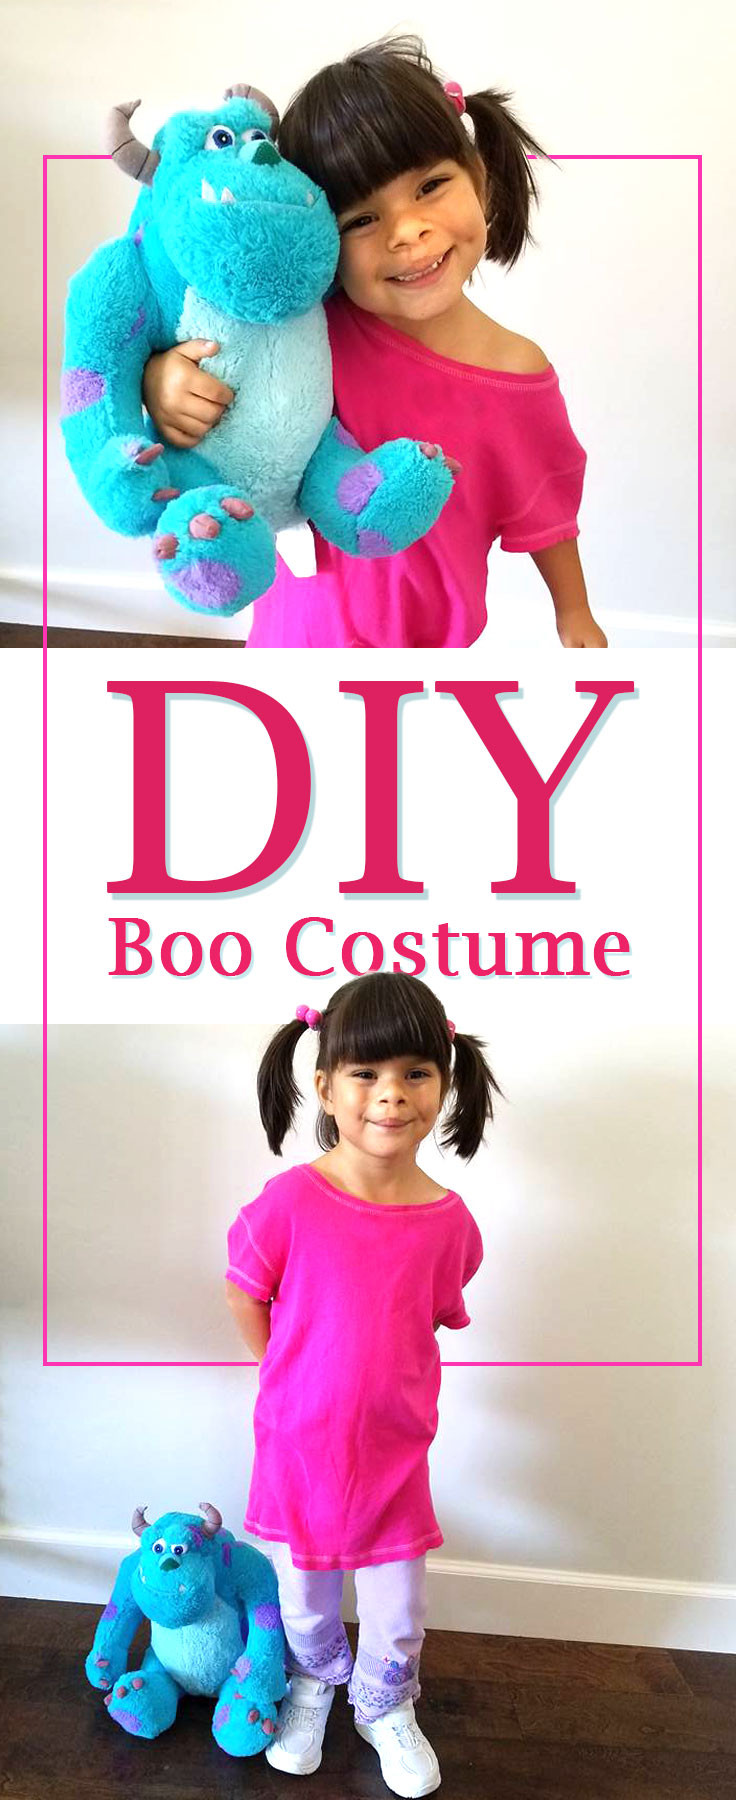 Boo Costume DIY  Boo costume Easy DIY No Sew Boo Costume for this Halloween